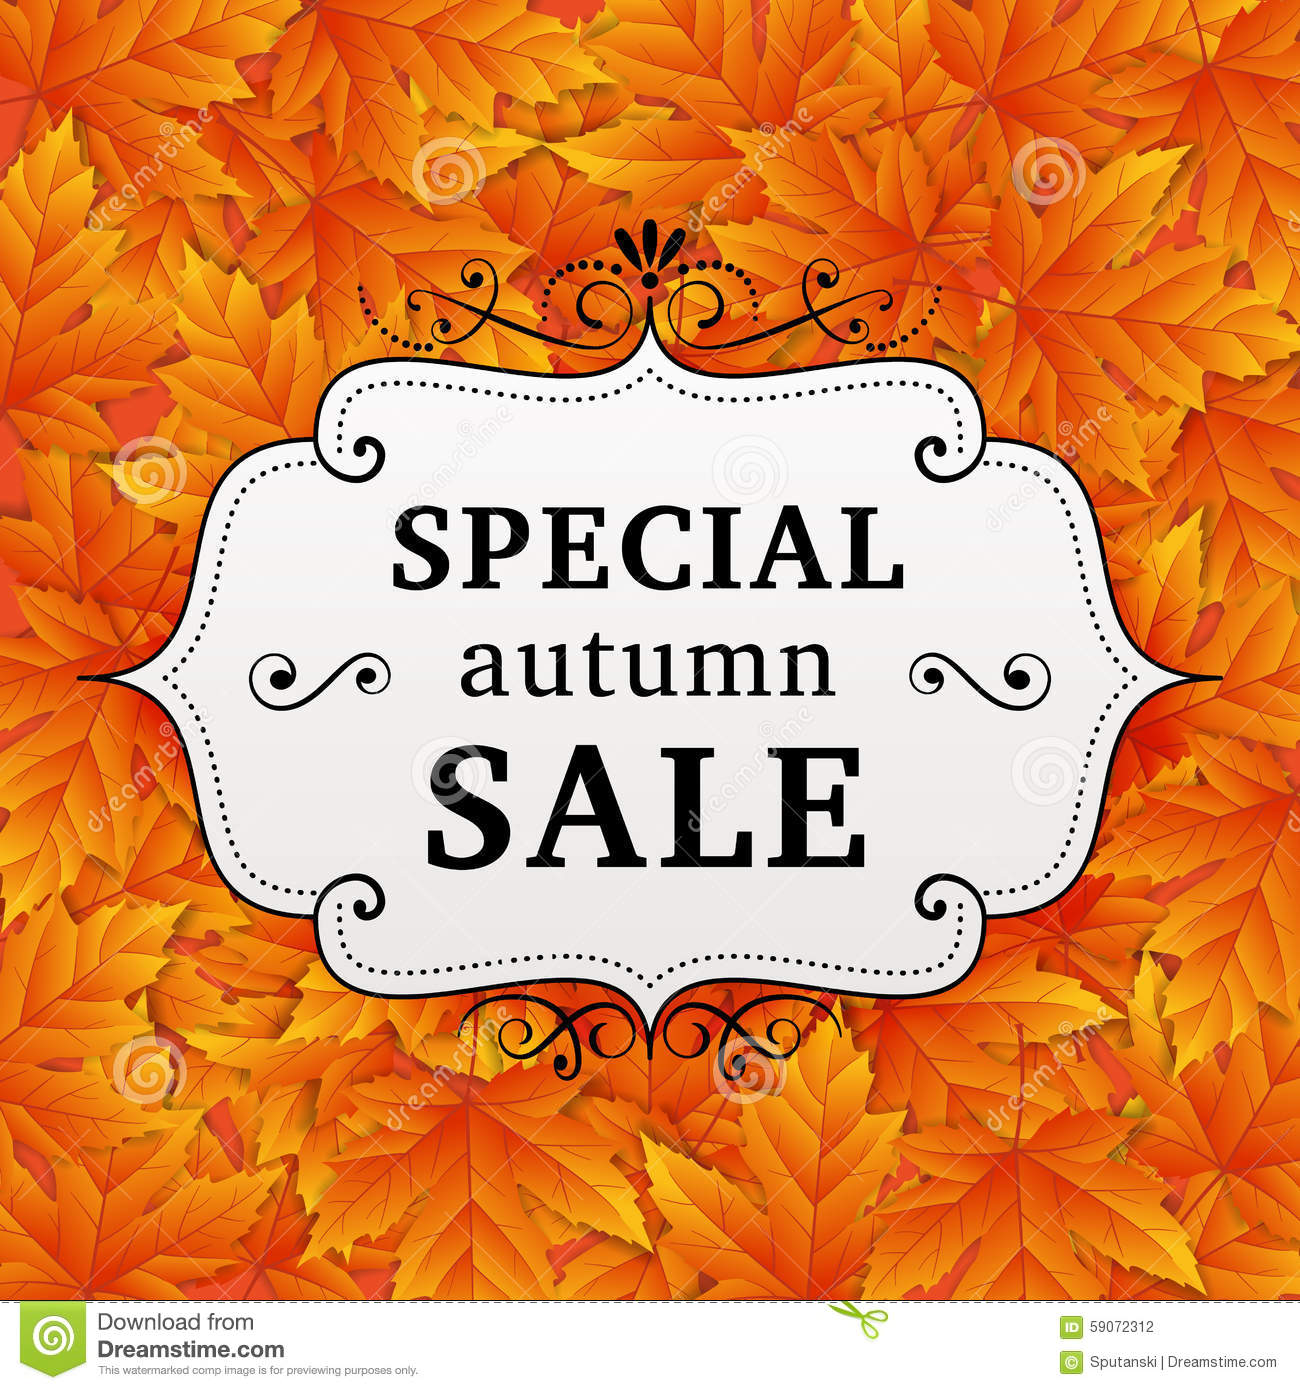 70cb3bbd68b Seasonal special autumn sale business background with colored leafs.